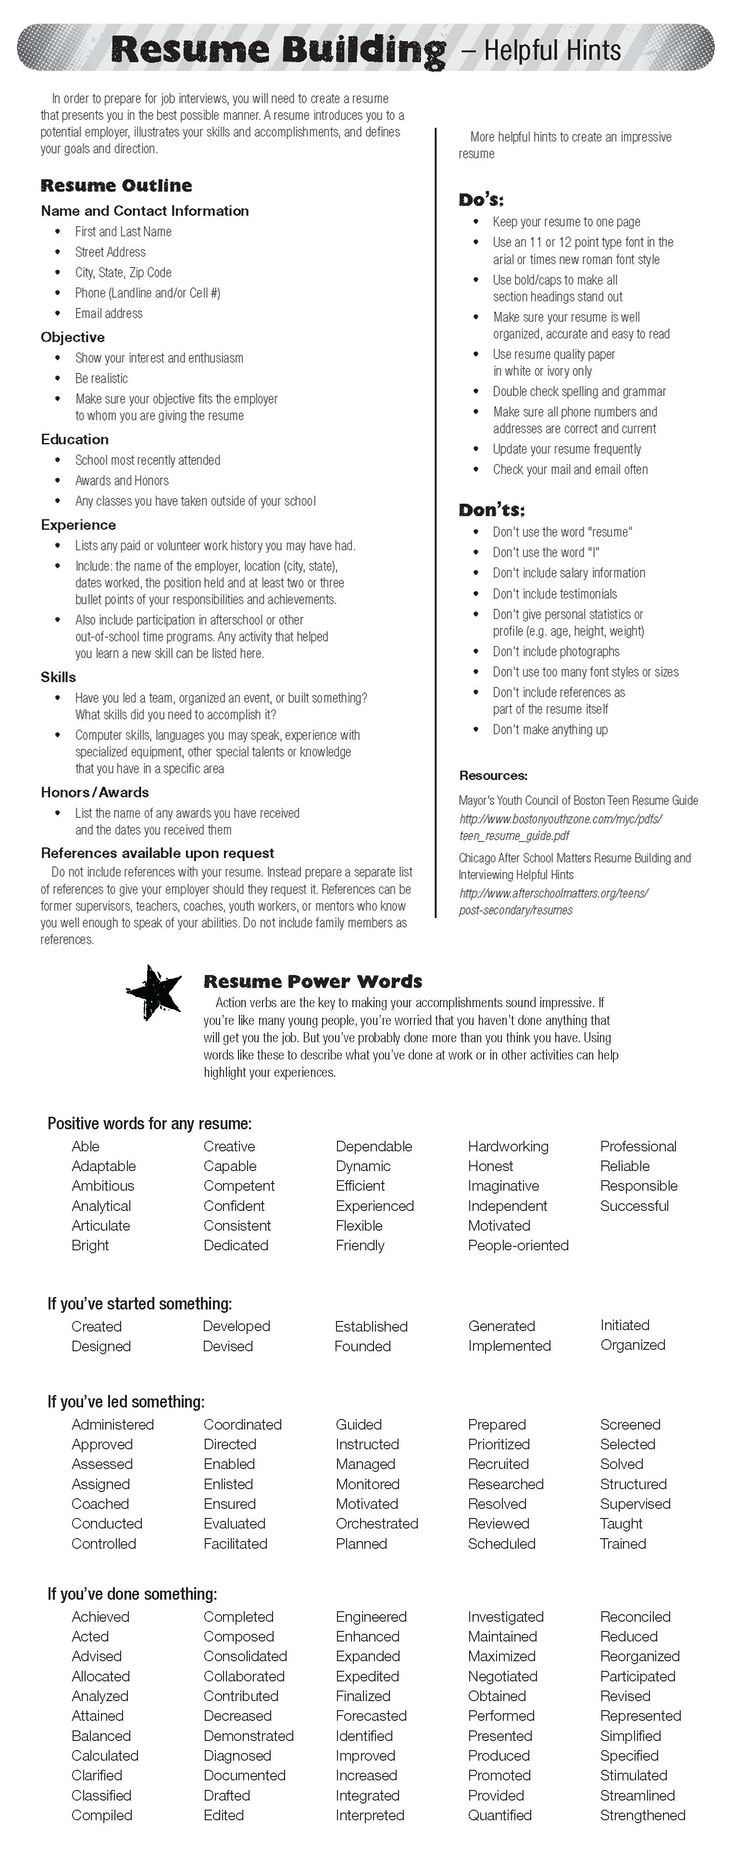 Opposenewapstandardsus  Wonderful  Ideas About Resume On Pinterest  Cv Format Resume Cv And  With Luxury  Ideas About Resume On Pinterest  Cv Format Resume Cv And Resume Templates With Alluring What Does A Resume Look Like Also Infographic Resume In Addition Sample Resume Cover Letter And Good Skills To Put On A Resume As Well As How Many Pages Should A Resume Be Additionally Resume Meaning From Pinterestcom With Opposenewapstandardsus  Luxury  Ideas About Resume On Pinterest  Cv Format Resume Cv And  With Alluring  Ideas About Resume On Pinterest  Cv Format Resume Cv And Resume Templates And Wonderful What Does A Resume Look Like Also Infographic Resume In Addition Sample Resume Cover Letter From Pinterestcom